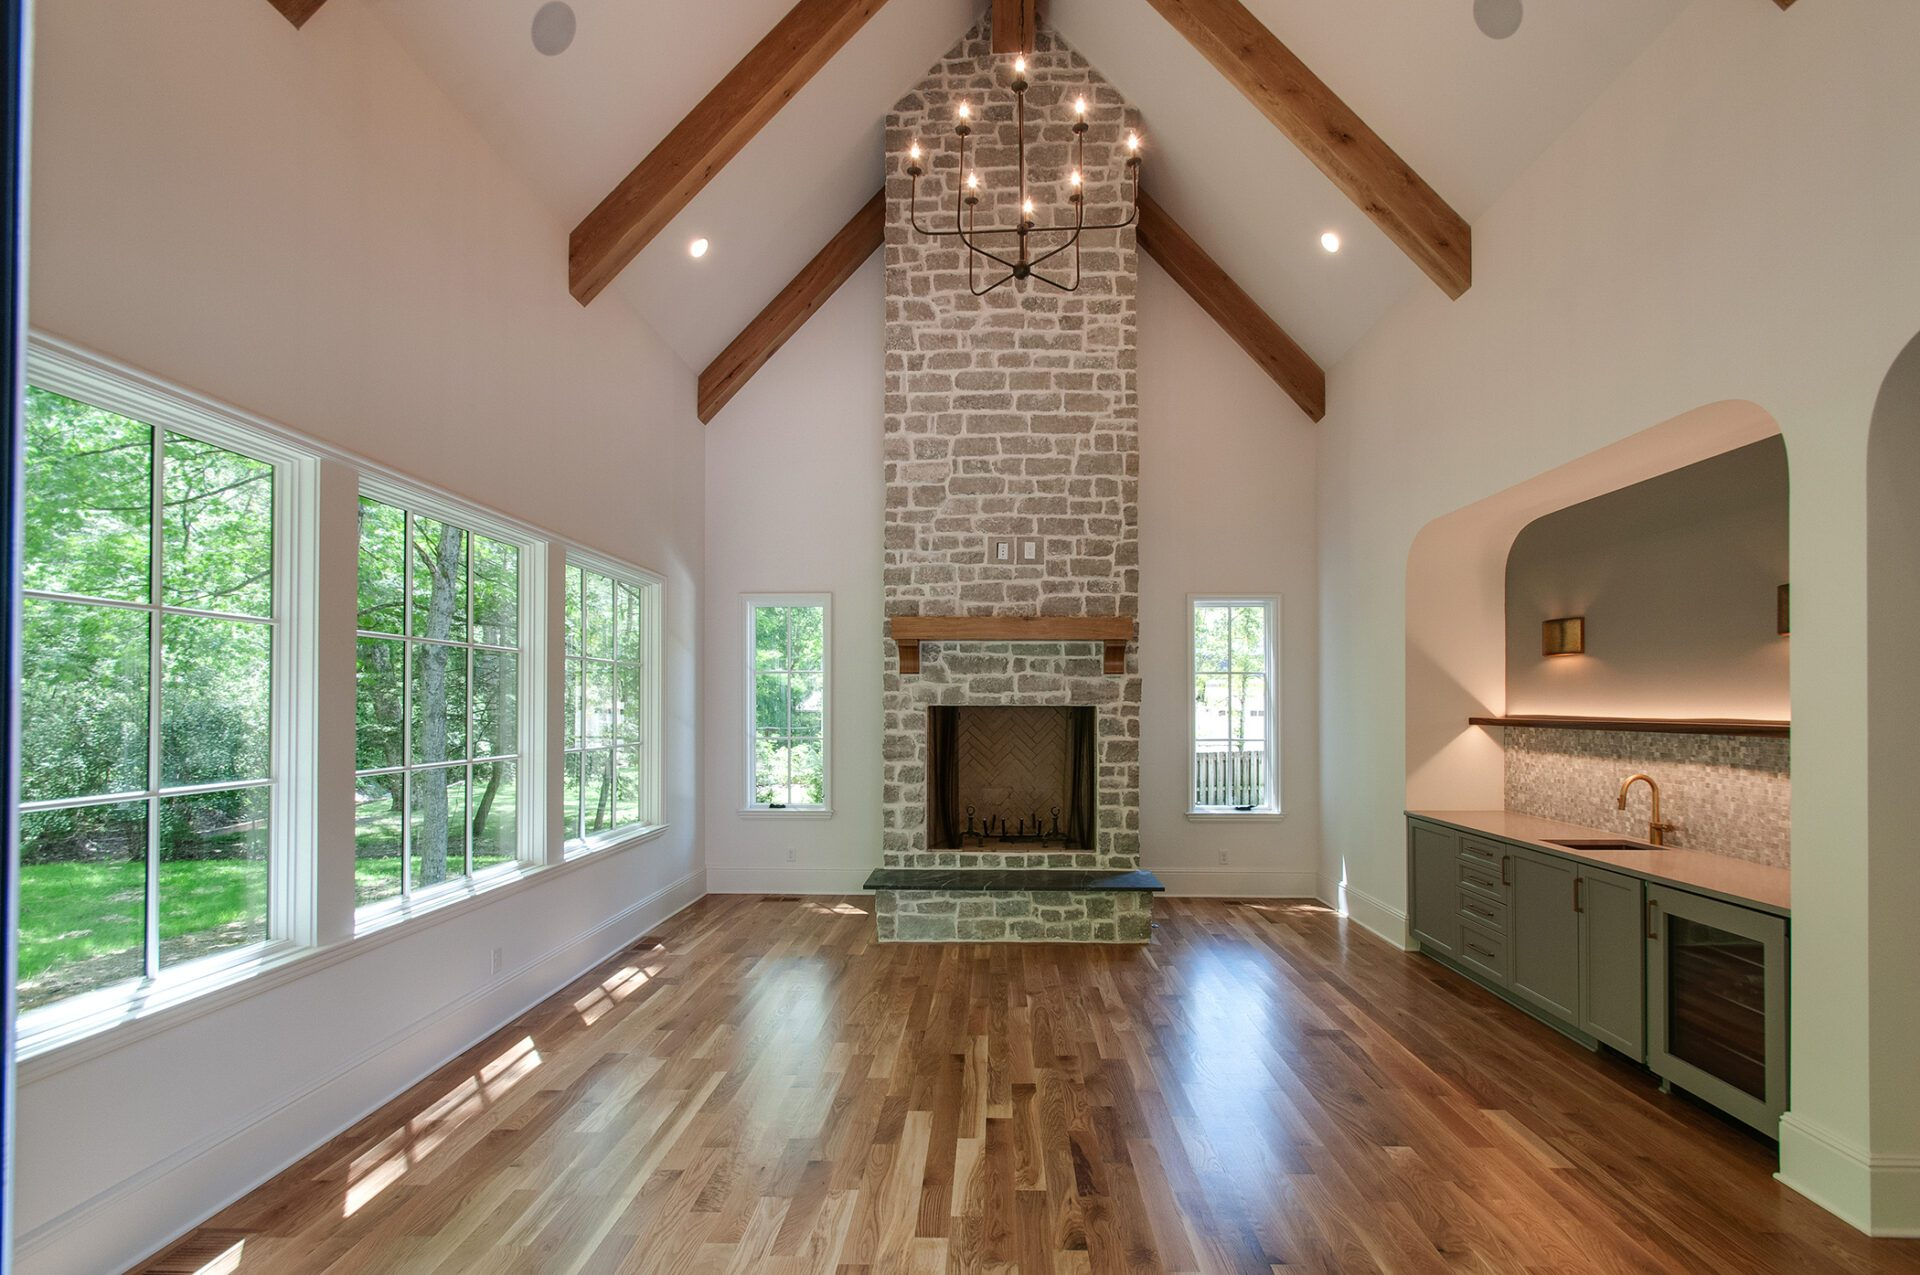 Newly renovated home with a new fireplace for home improvements from Donnelly Timmons